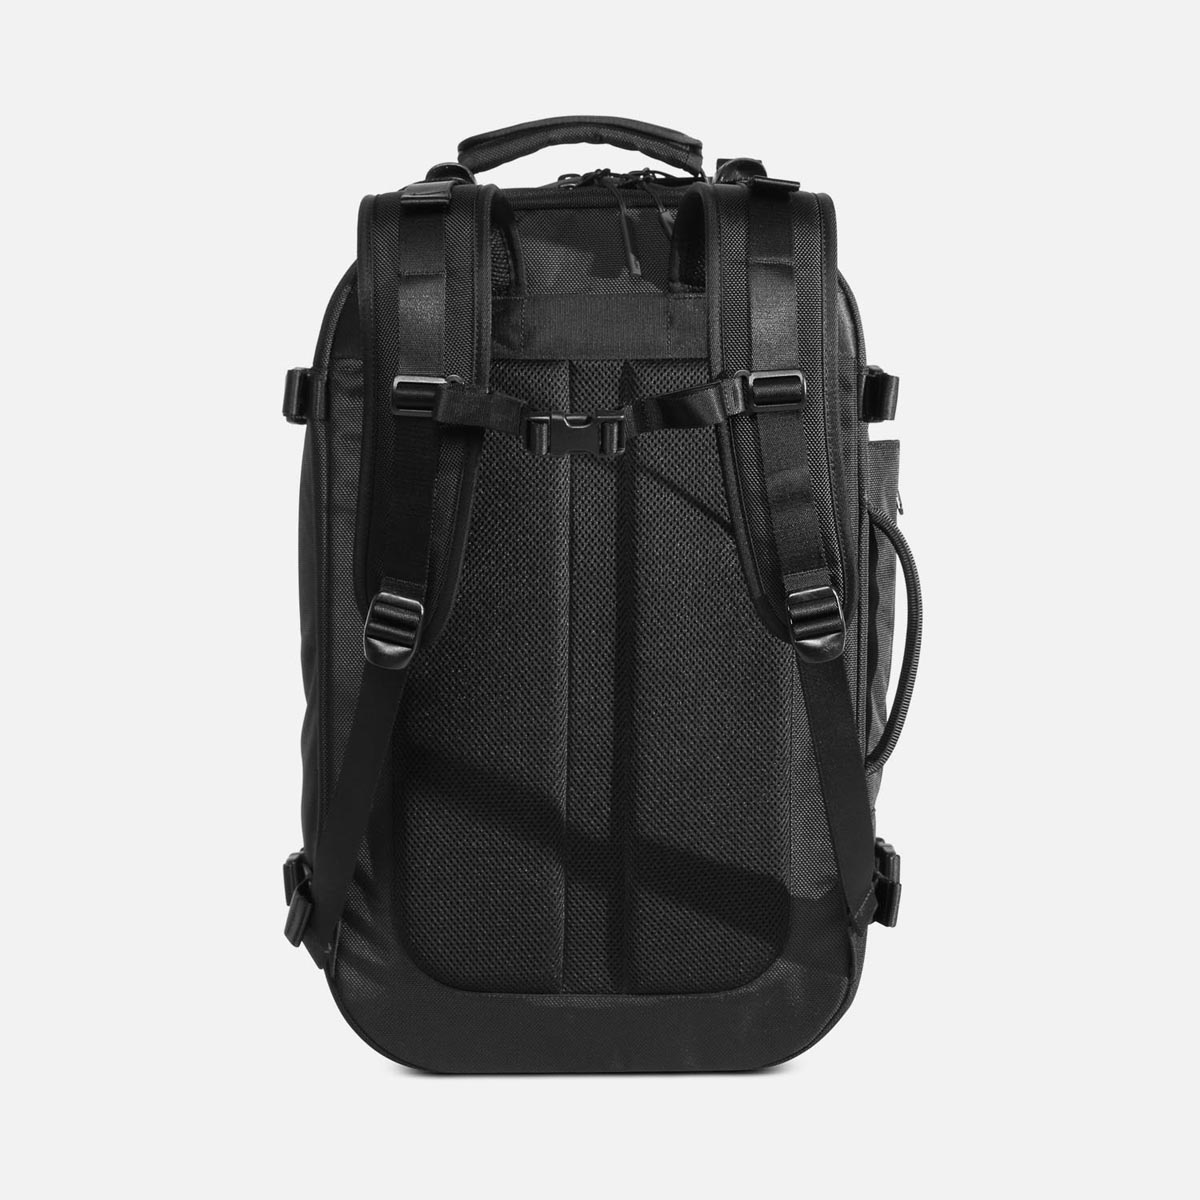 0e625c70f071 Travel Pack - Black — Aer | Modern gym bags, travel backpacks and ...